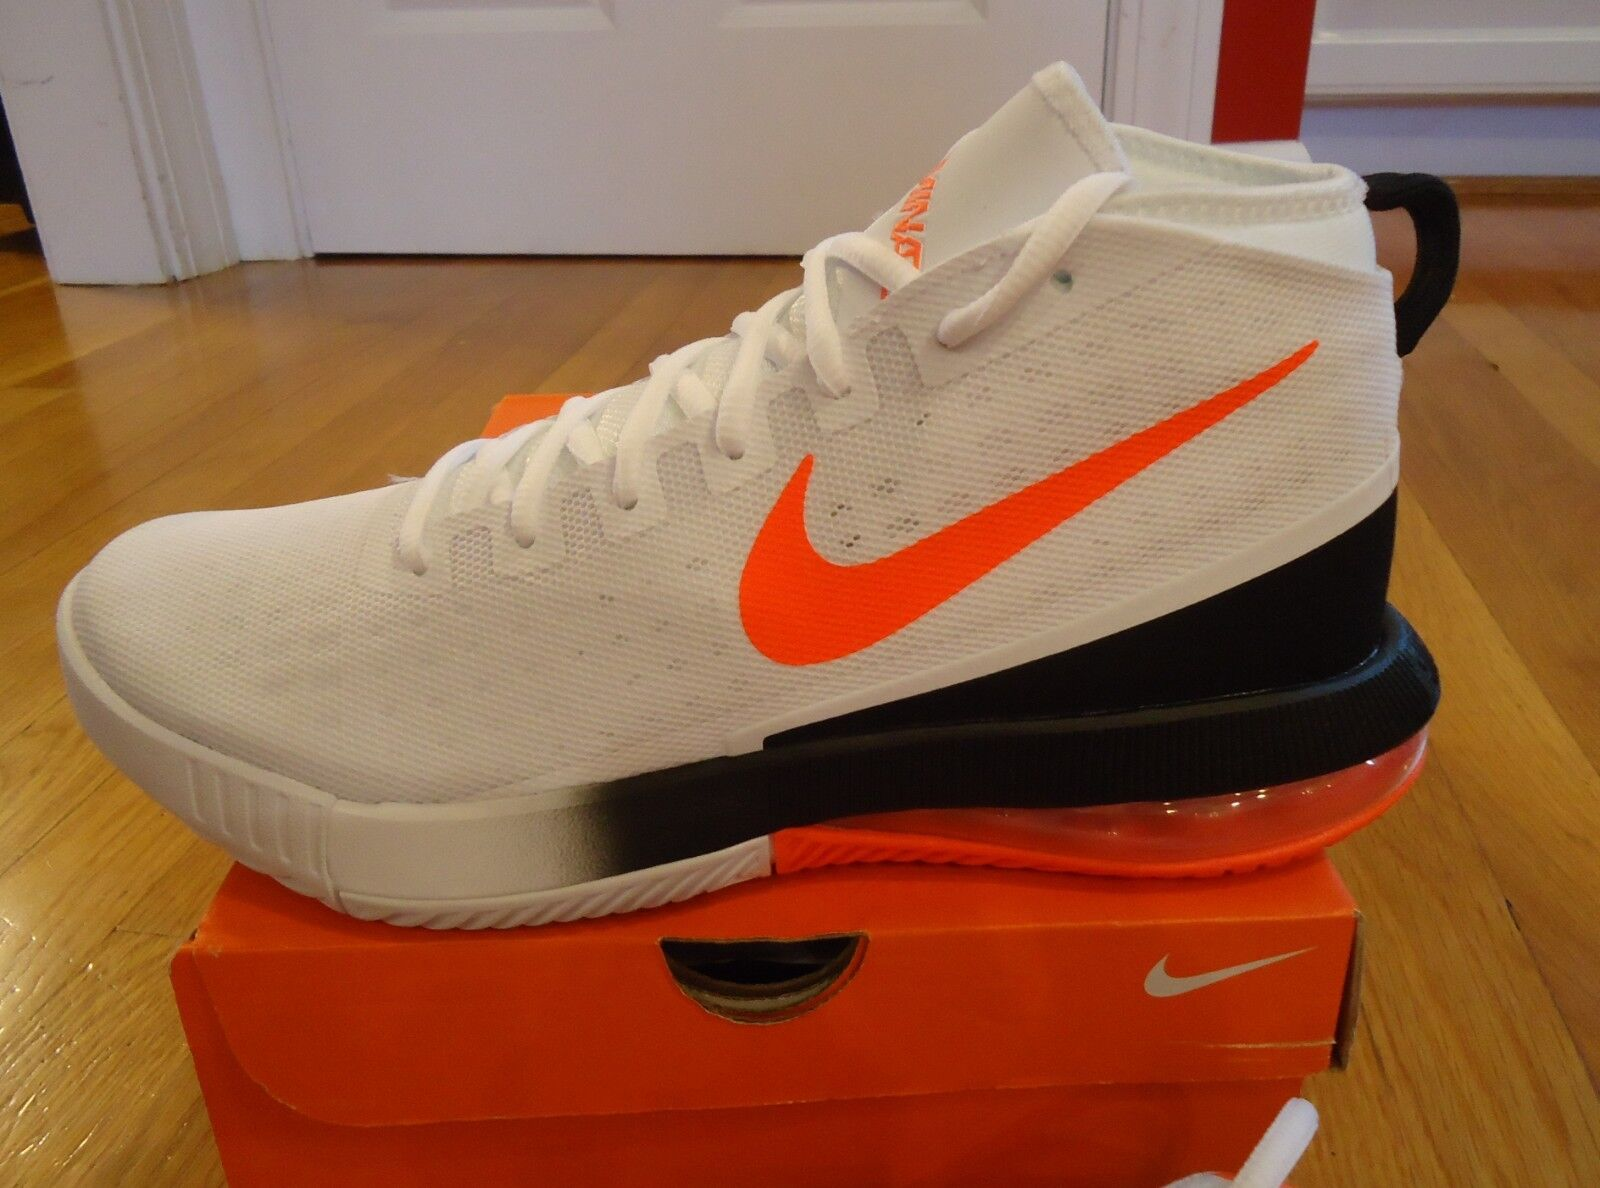 nouvelles chaussures nike air air air max pour hommes blancs dominent cramoisi taille 9 msrp 120 74eb48